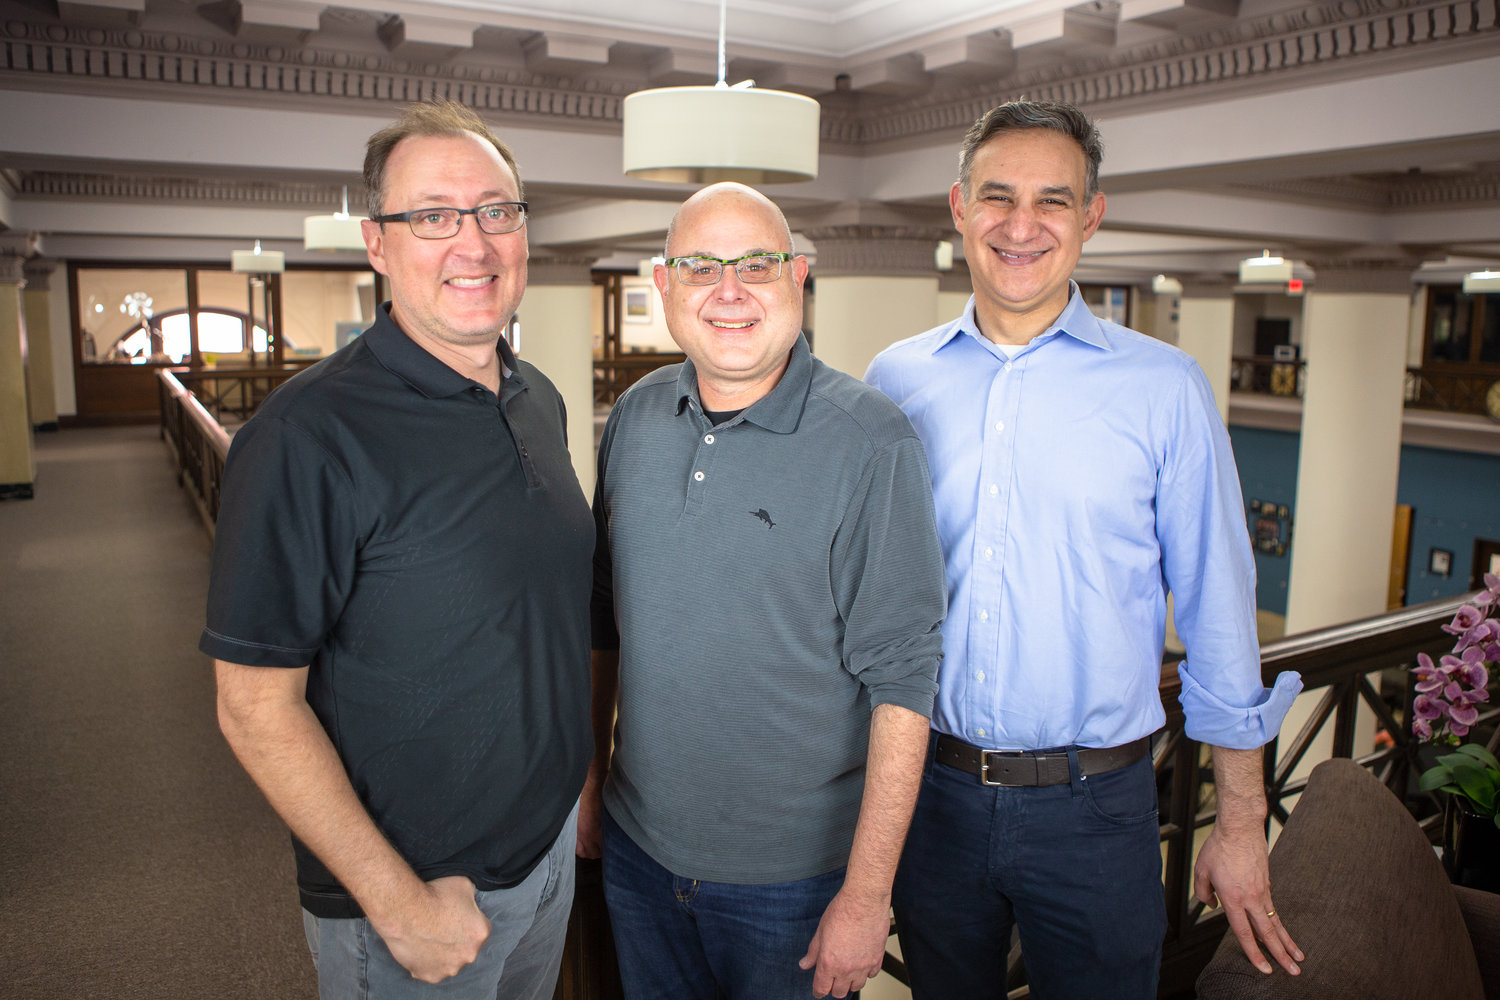 Niche Media founder, Carl Landau, (center) poses with Second Street co-founders, Doug Villhard (left) and Matt Coen.